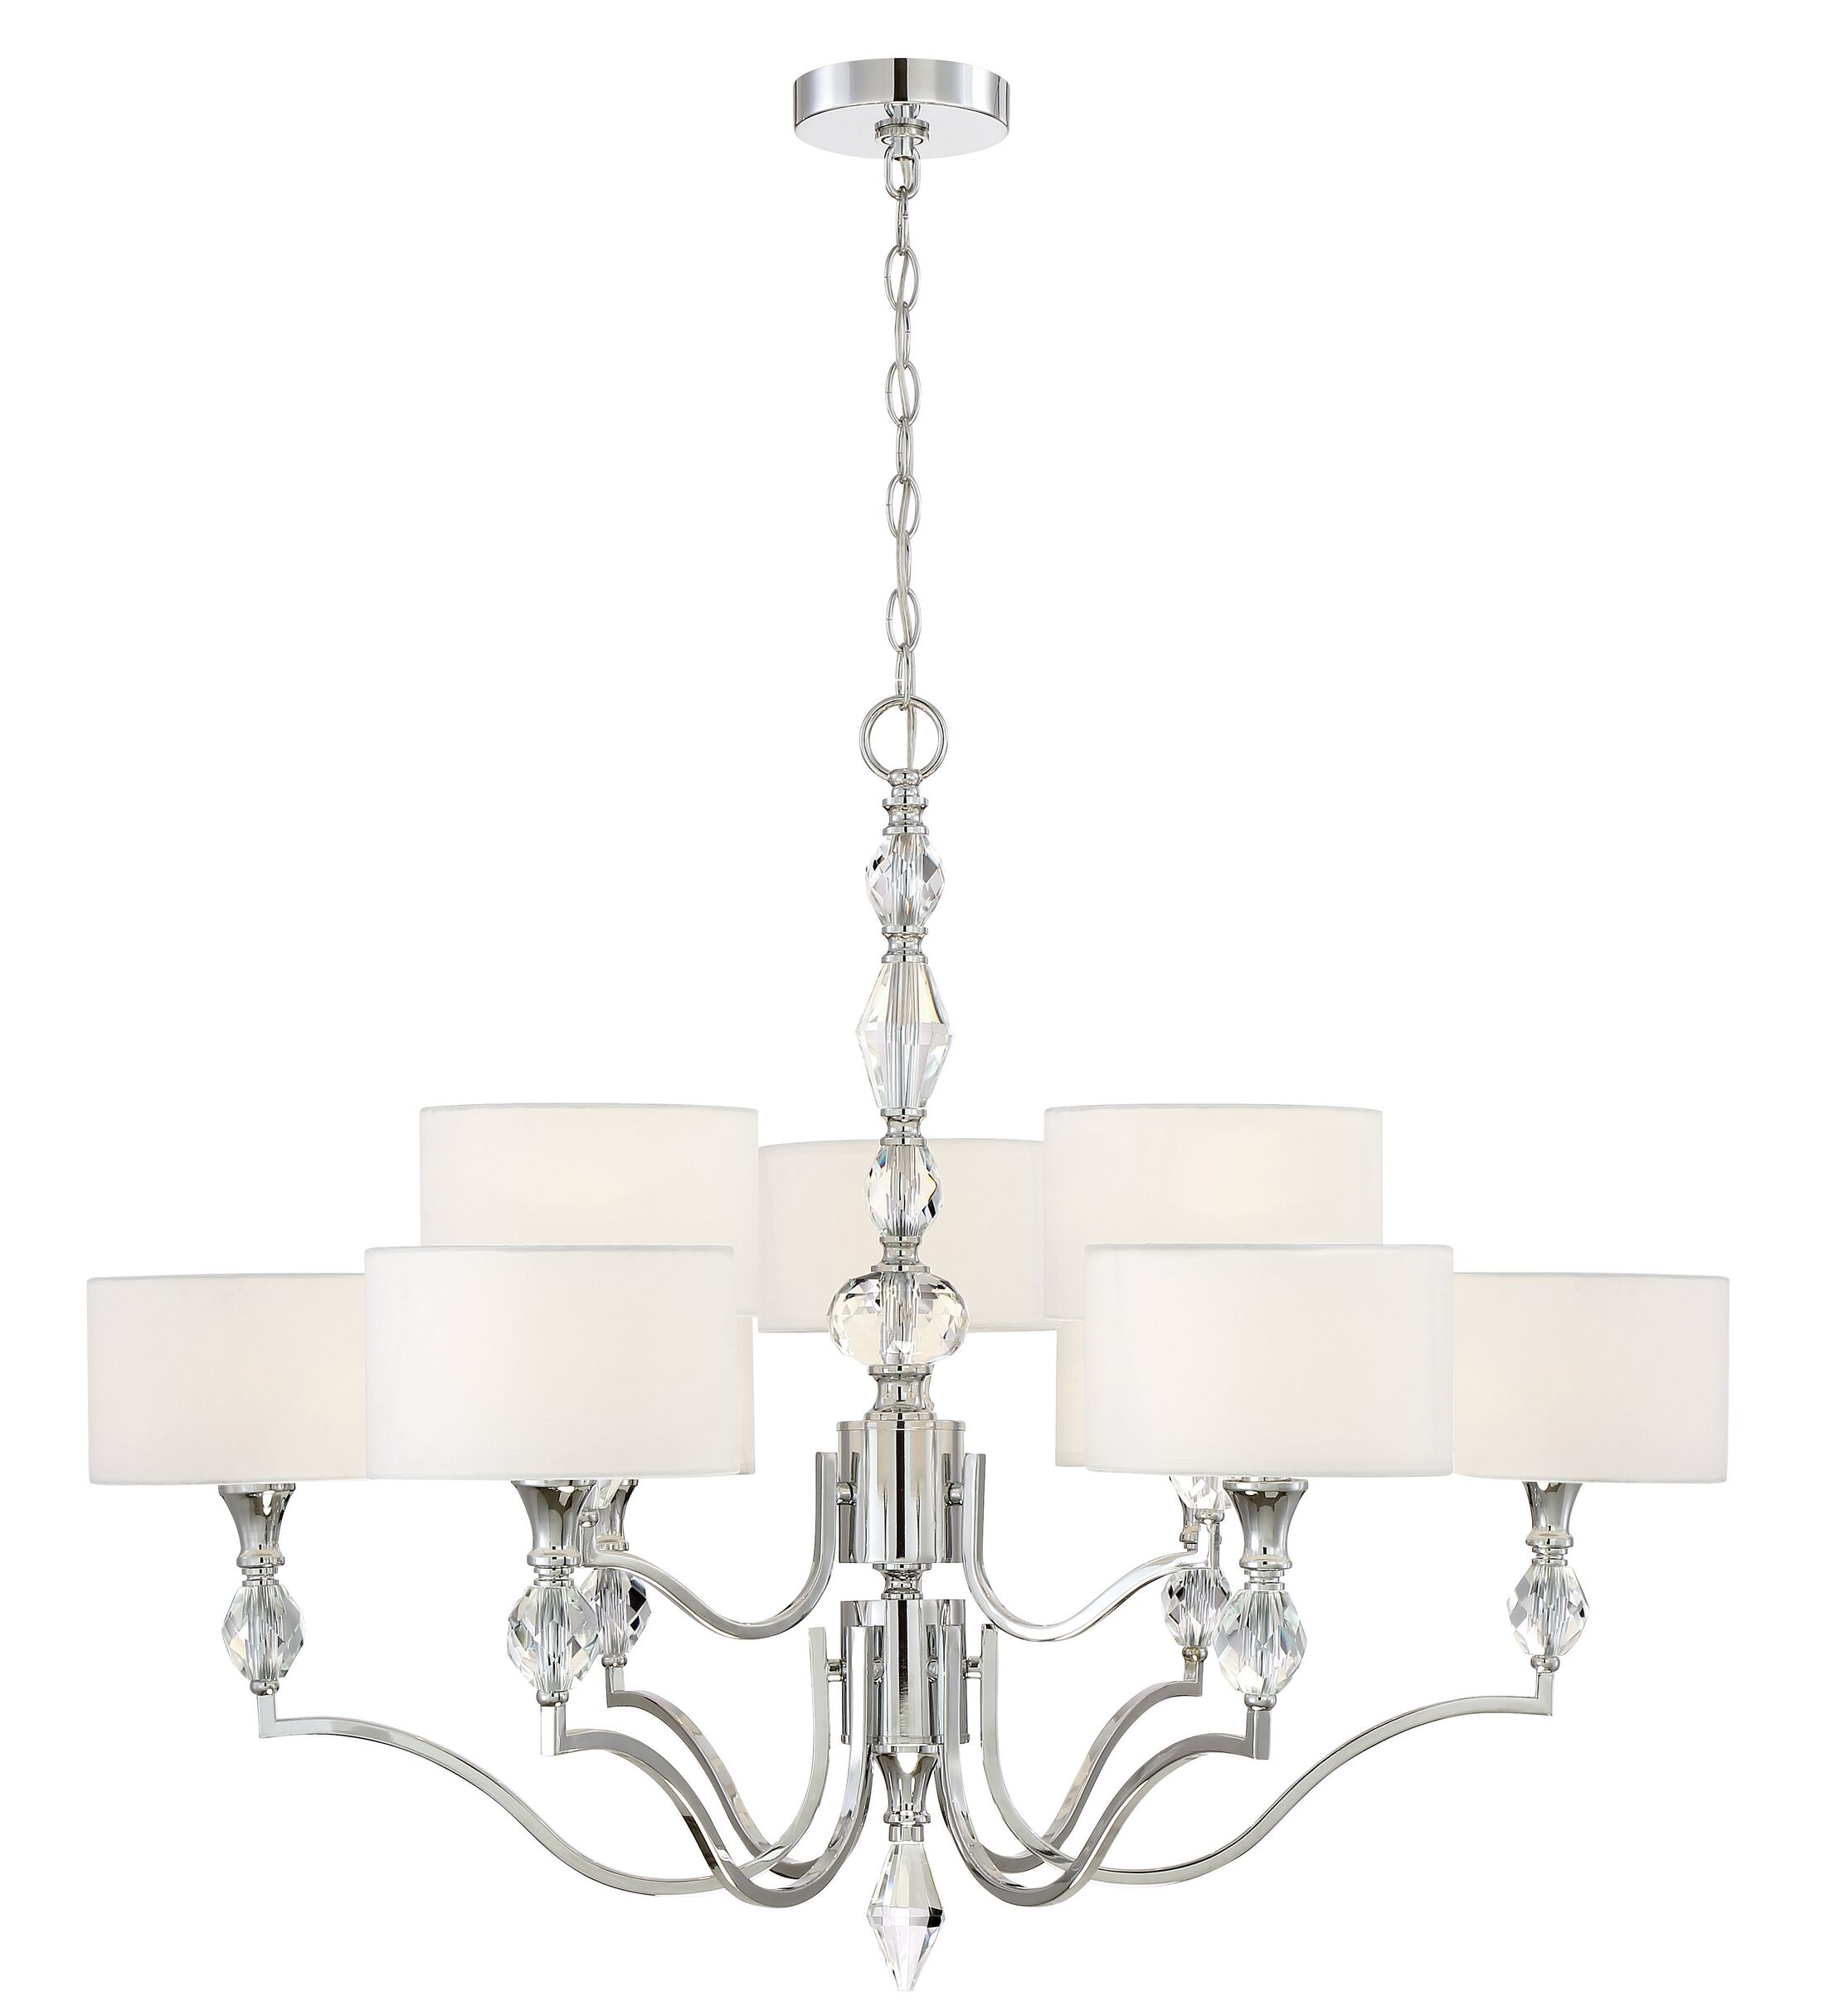 Evi 9-Light Shaded Chandelier